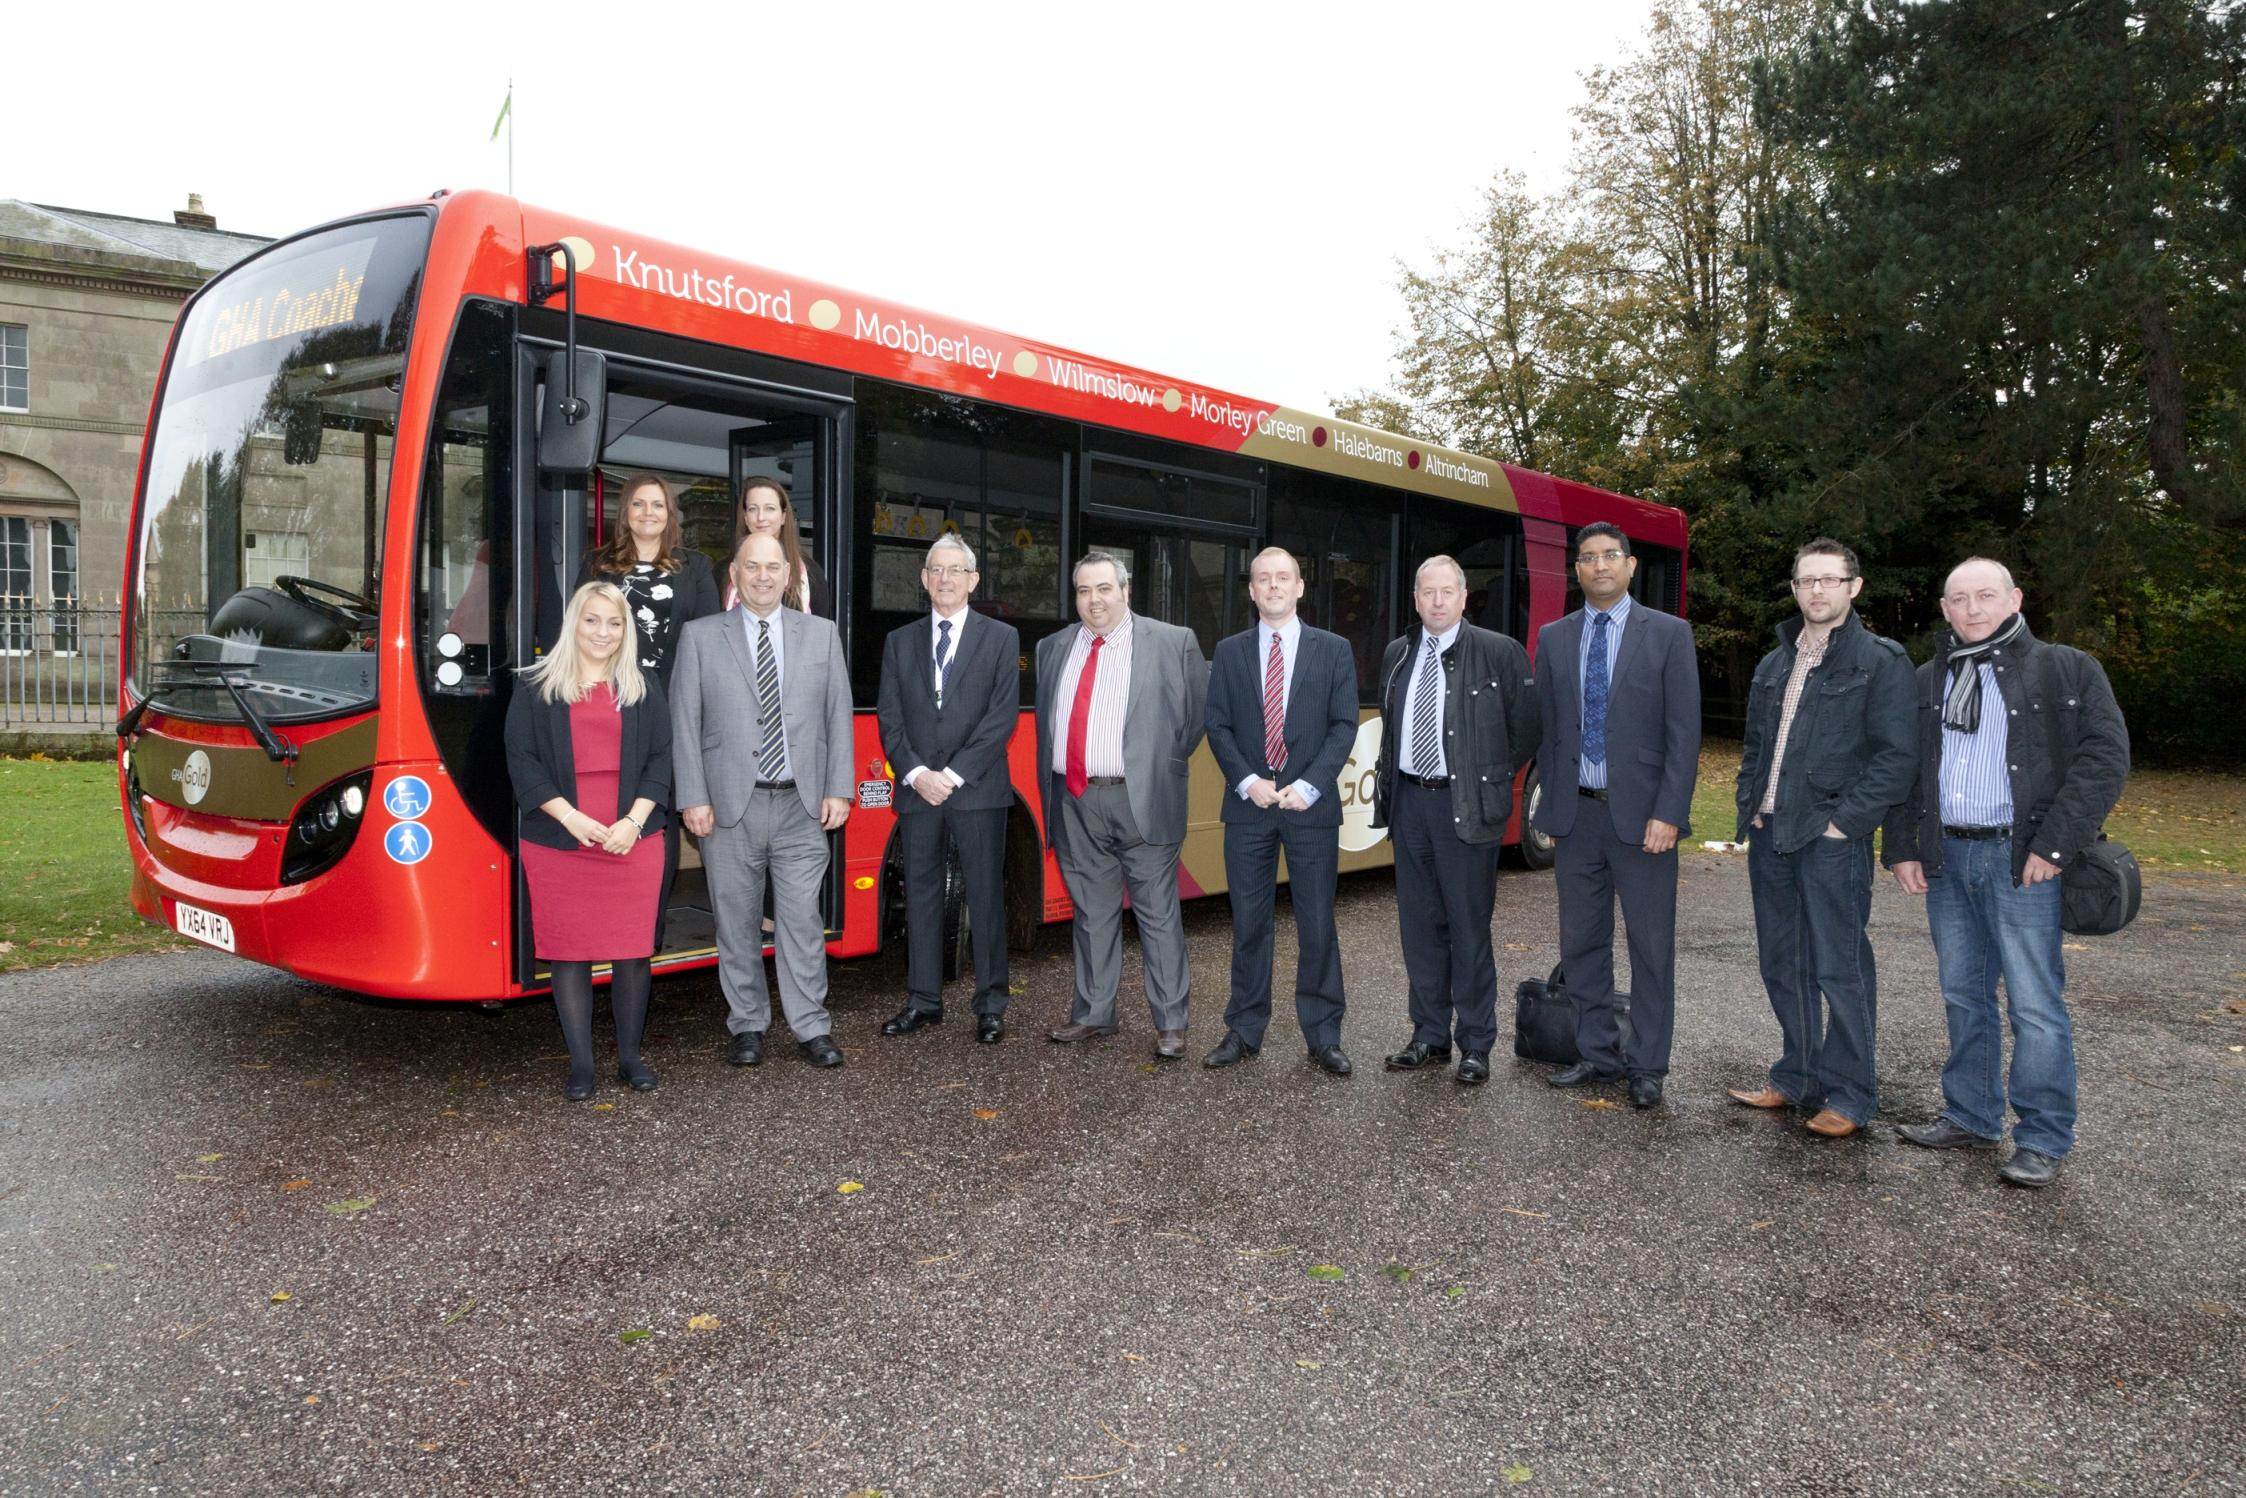 Bus firm launches new 'gold service' at Tatton Park